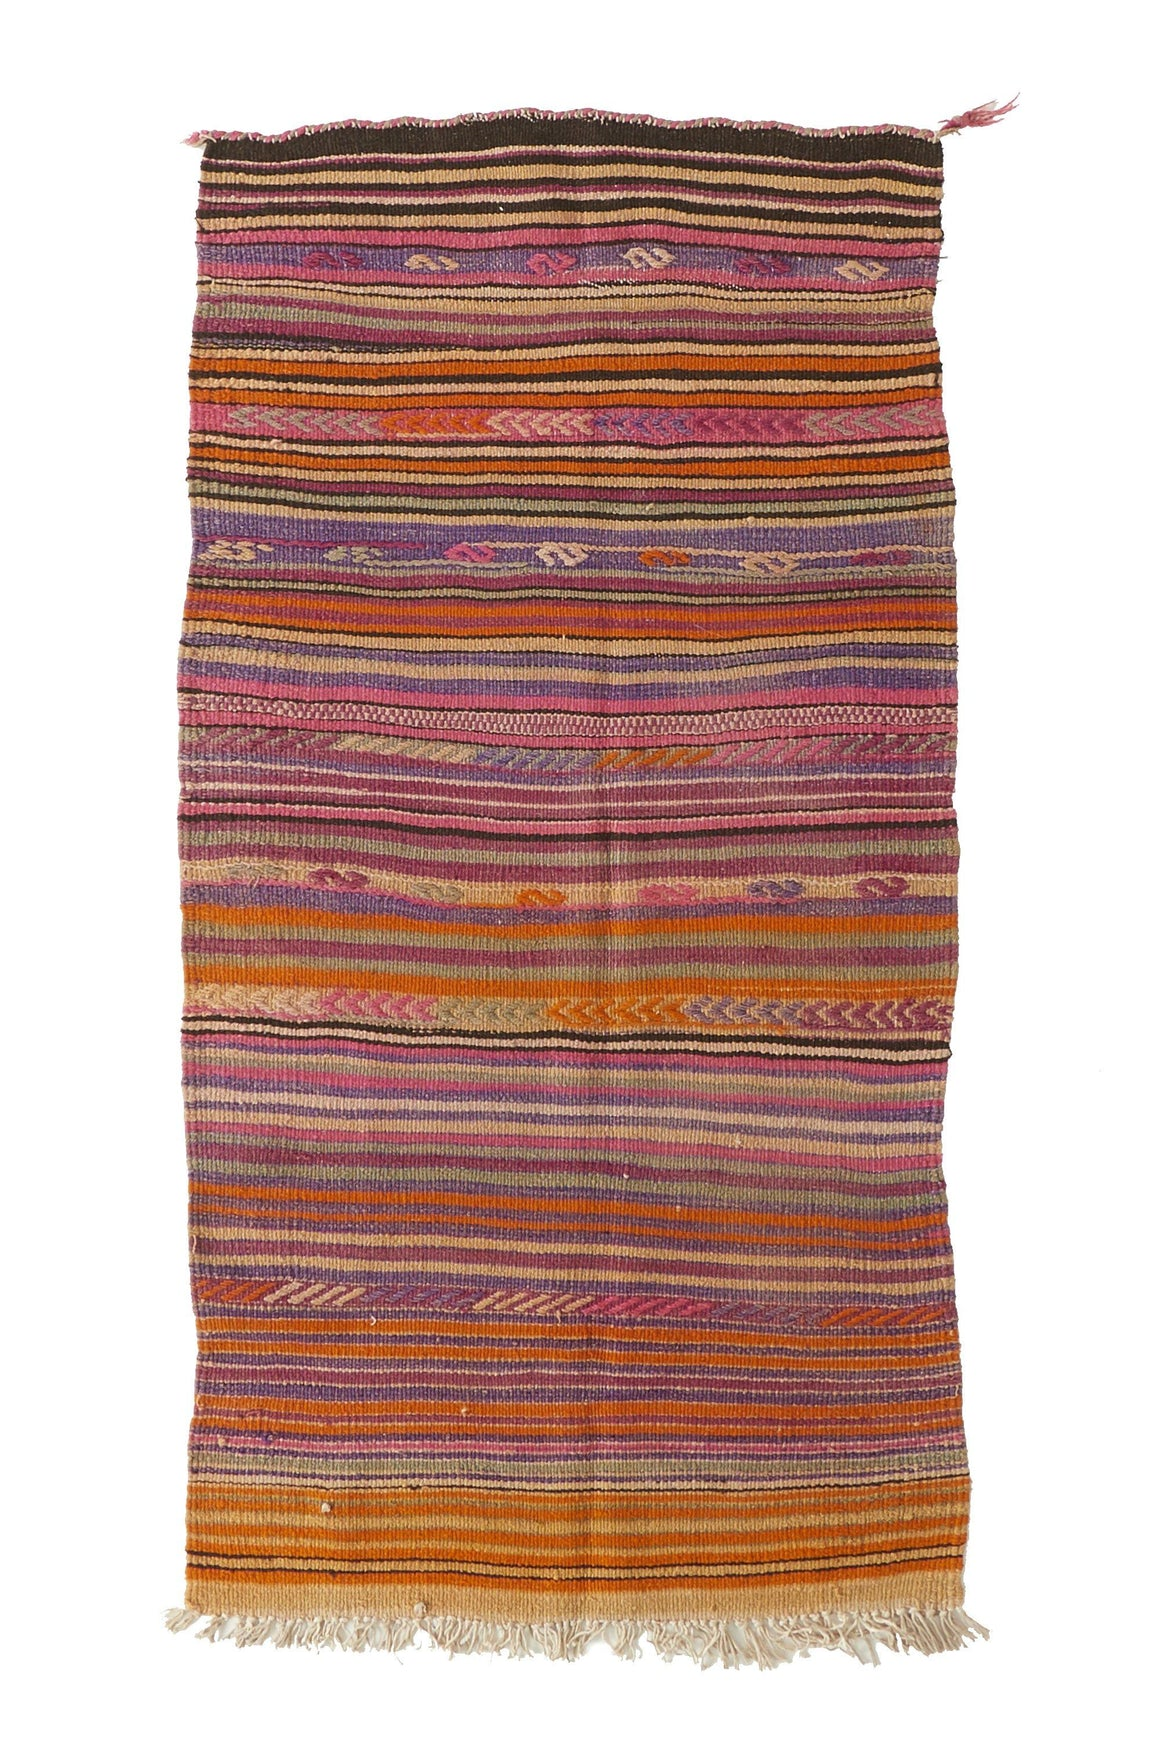 "'Wadi' Turkish Runner Rug - 2'9"" x 5'2"" - Canary Lane - Curated Textiles"